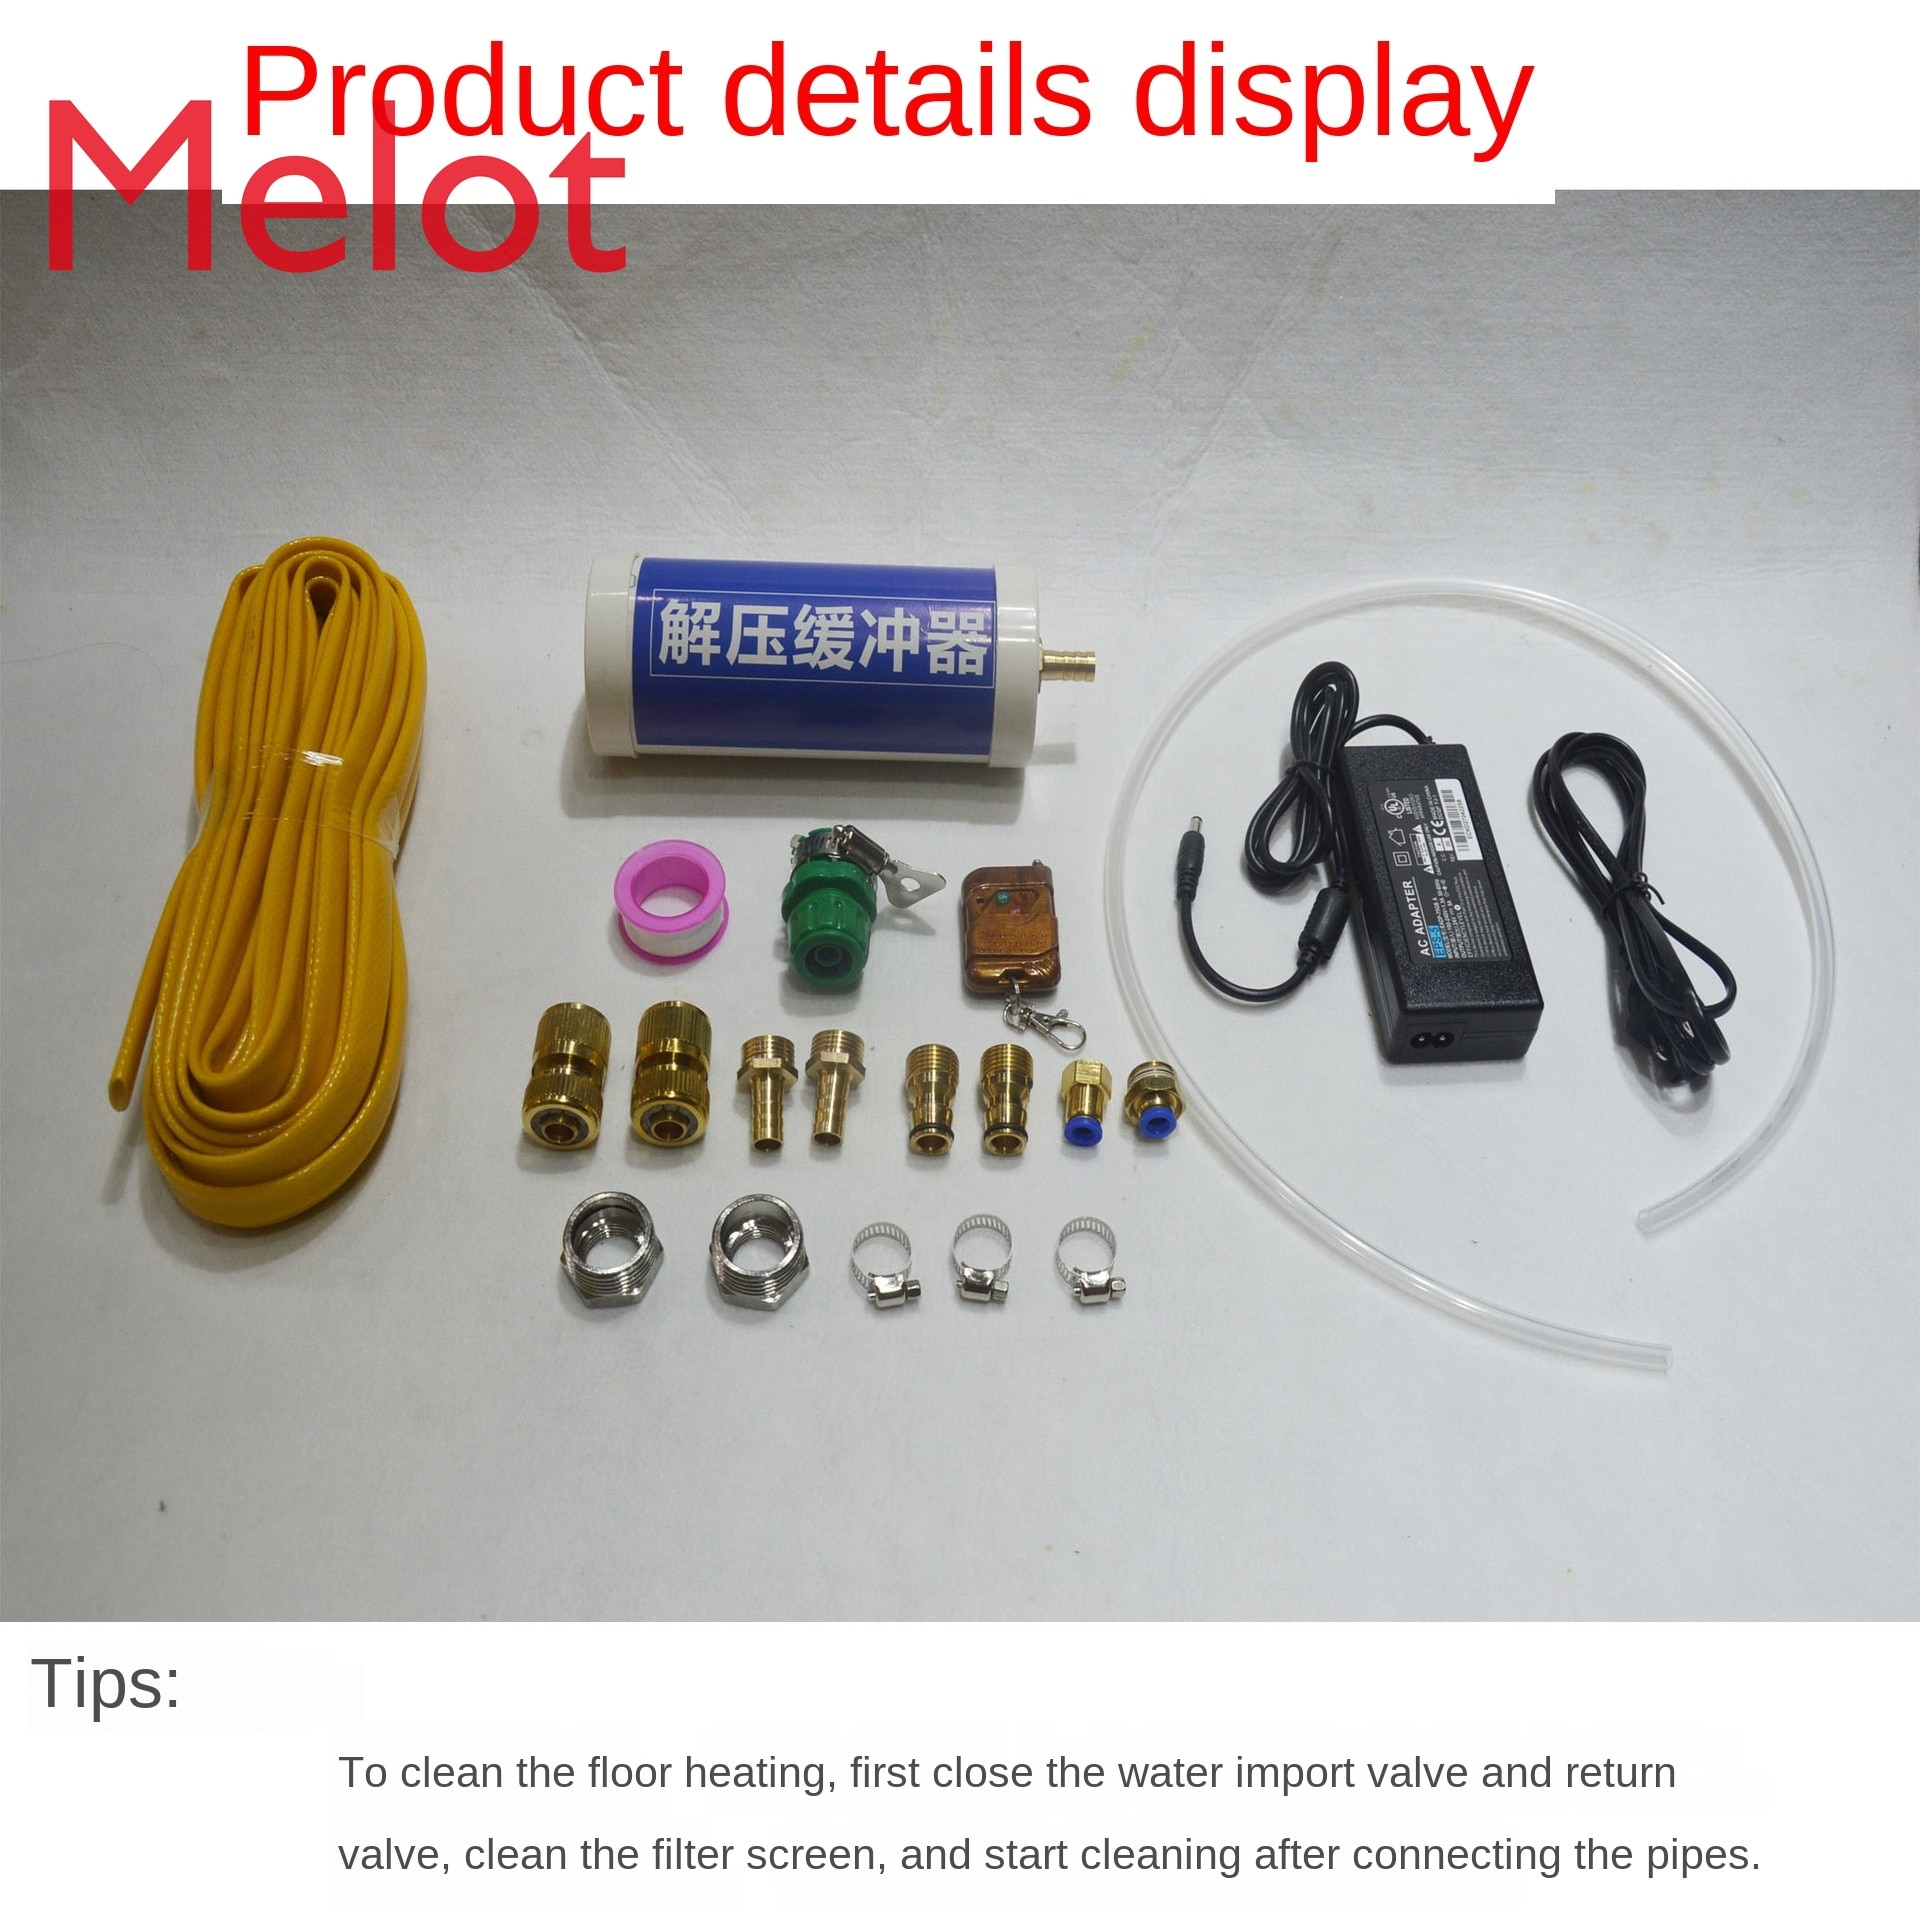 Pulse Floor Heating Cleaning Machine Tap Water Pipe Cleaning Machine Multi-Function Aluminum Box Pipe Cleaning Tool enlarge